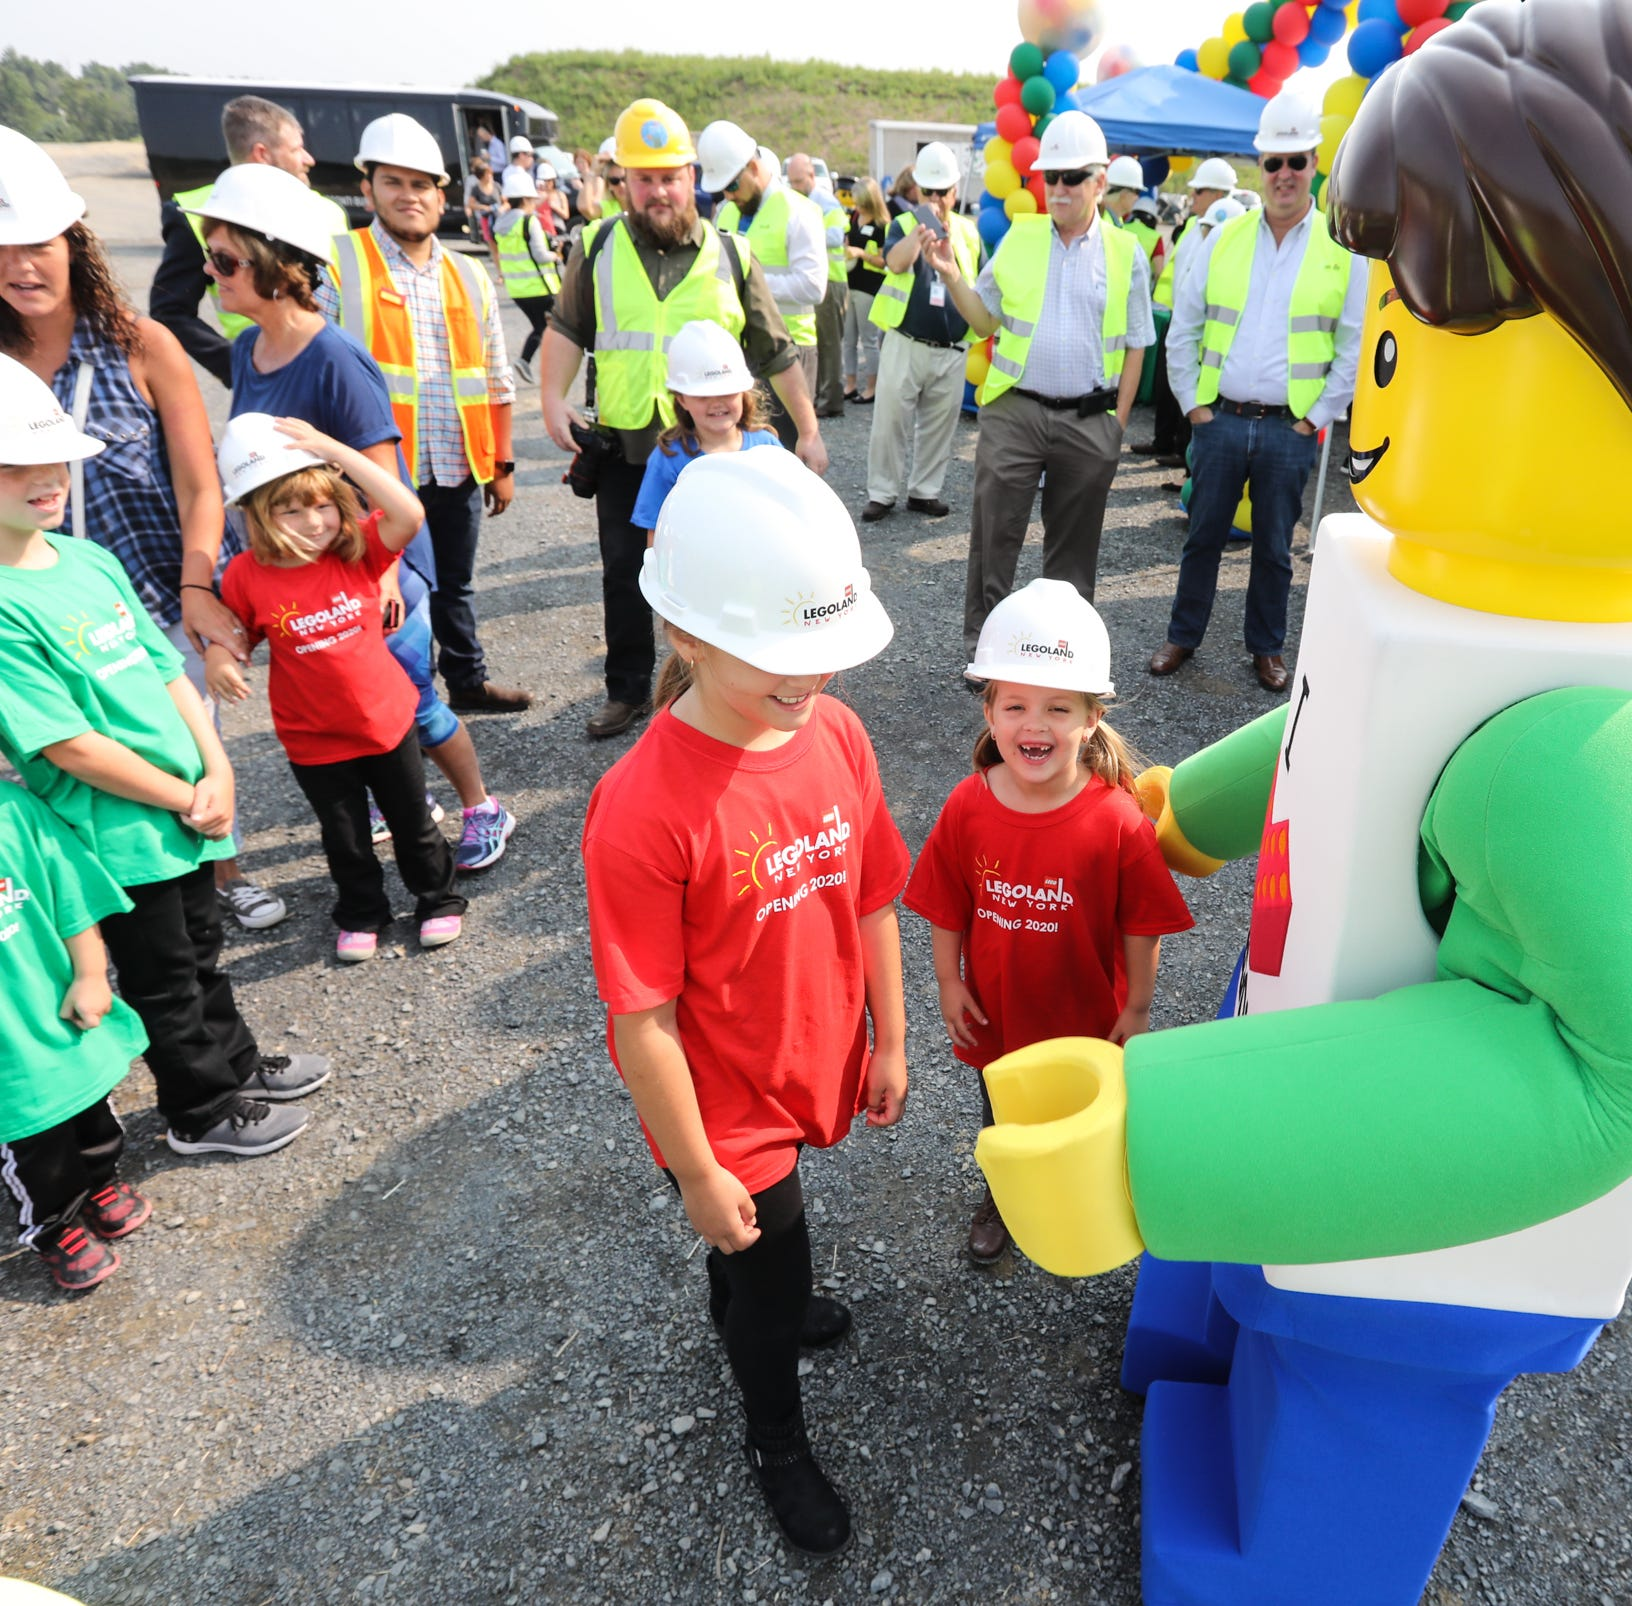 Local children take photos with a LEGO character during a tour of the construction progress of LEGOLAND New York in Goshen on Thursday, August 16, 2018.